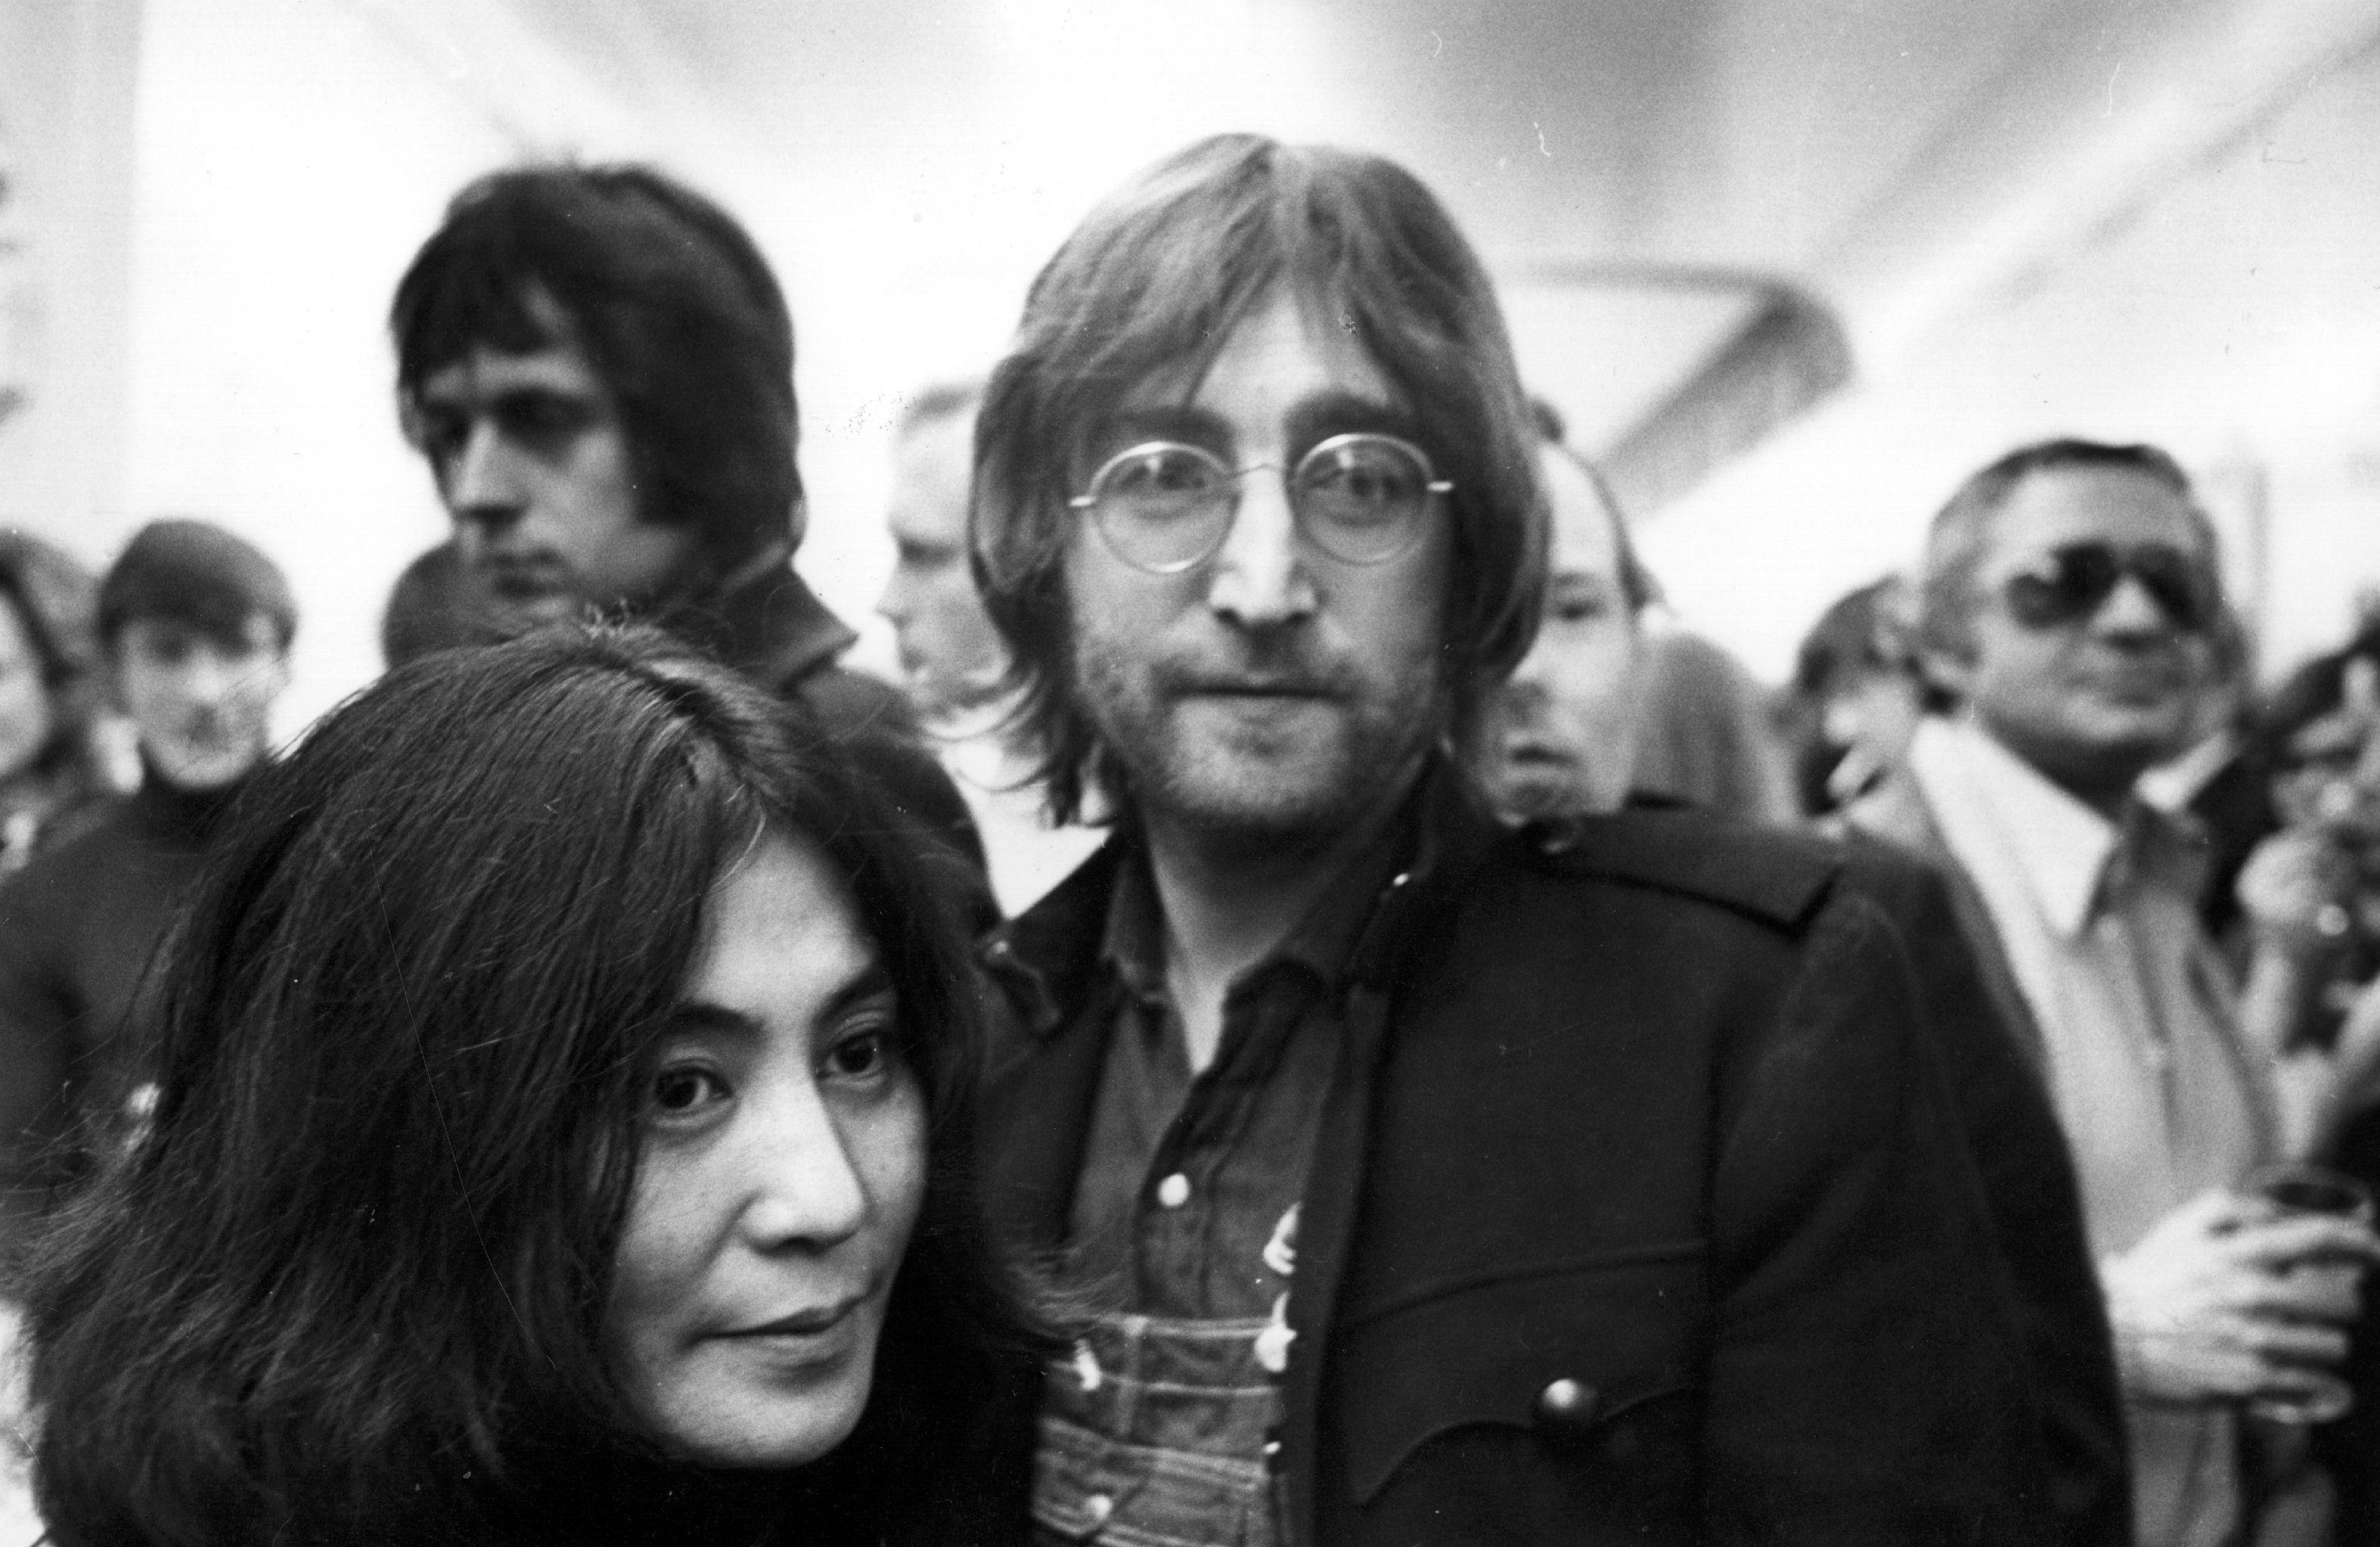 John Lennon wrote Imagine in one sitting as wife Yoko Ono watched on (Picture: Getty Images)